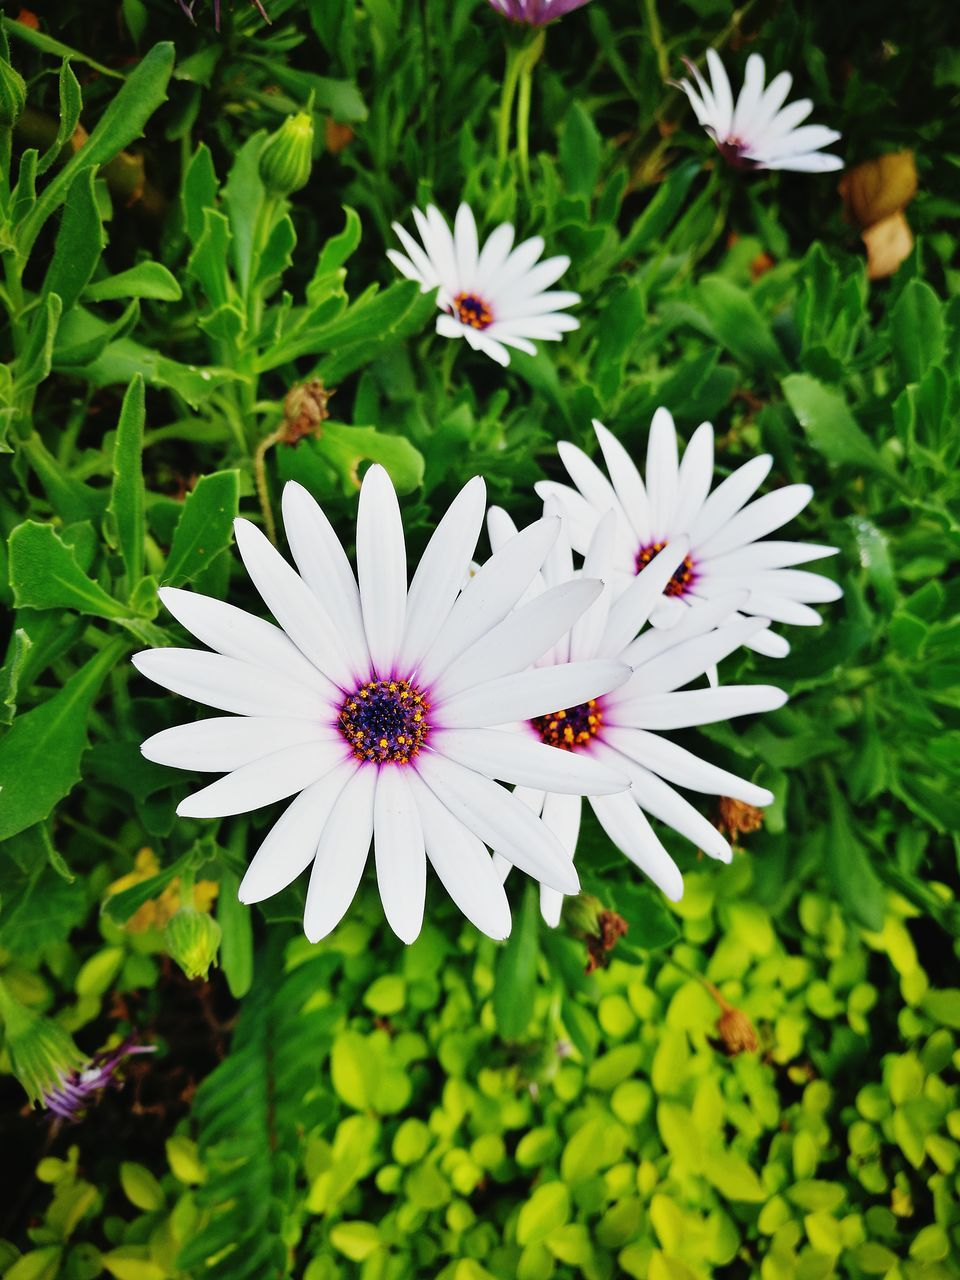 flower, petal, nature, freshness, growth, beauty in nature, fragility, flower head, plant, white color, day, high angle view, outdoors, blooming, pollen, no people, green color, osteospermum, leaf, close-up, animal themes